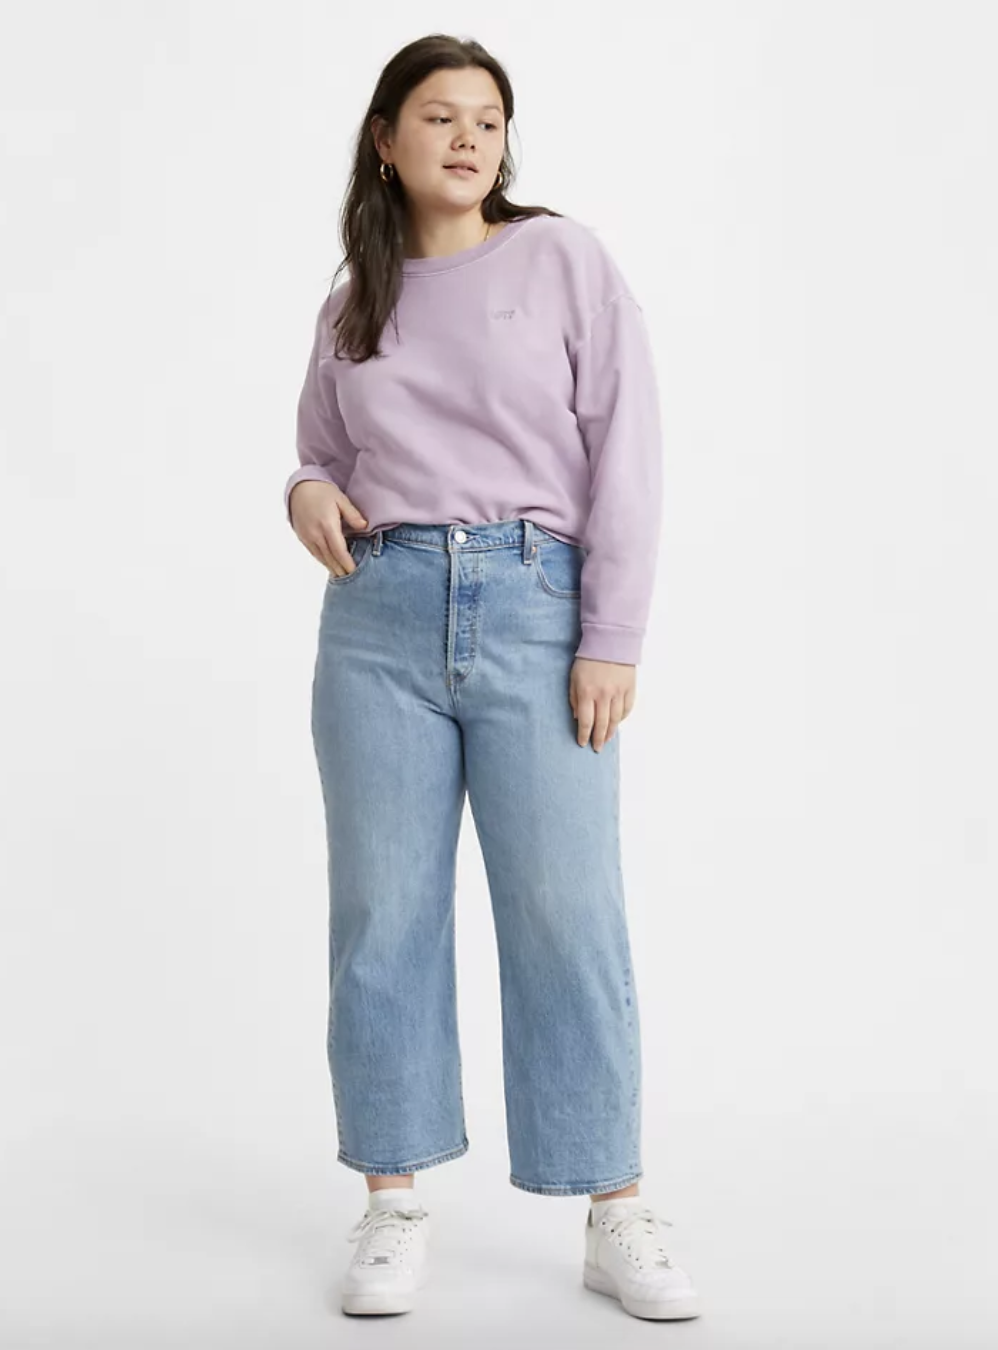 Model in light wash high waist jeans with wide boot cut bottoms